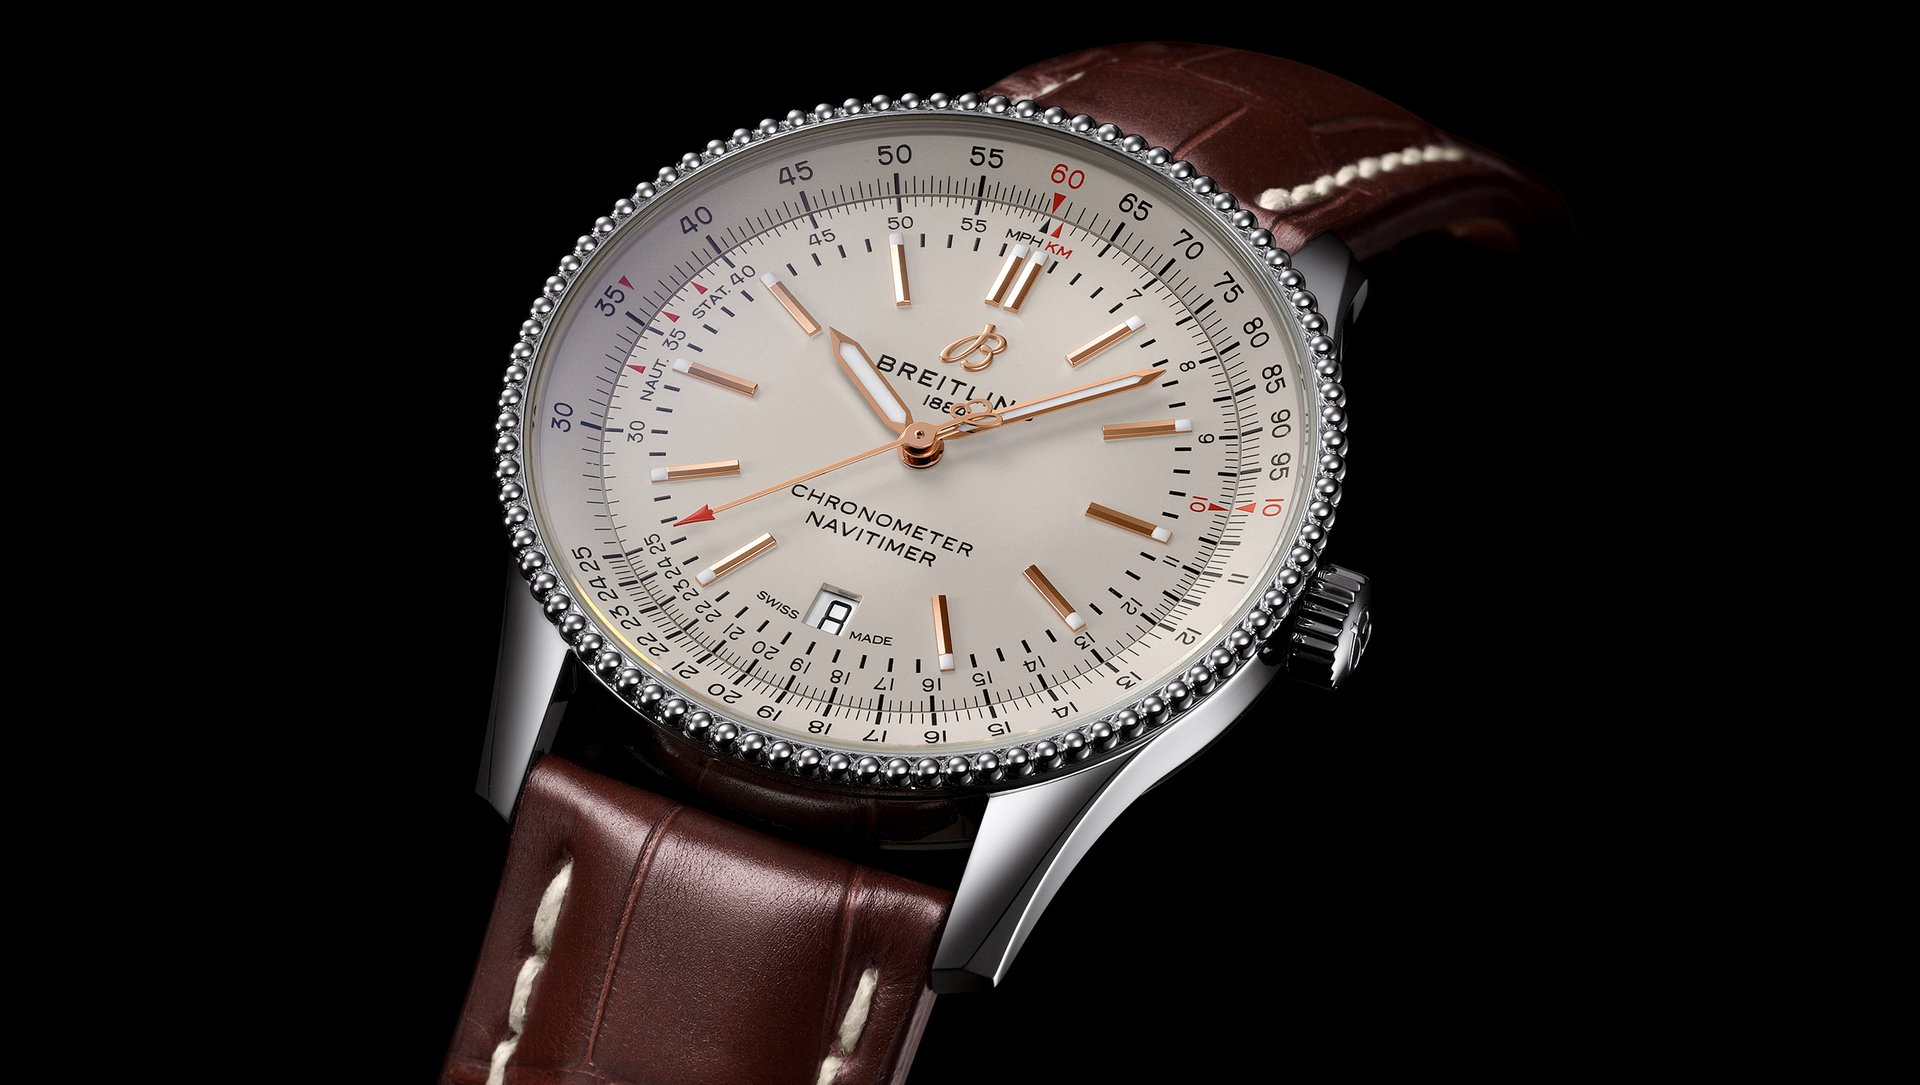 https://static.breitling.cn/media/wysiwyg/news/19-3-20/1.jpg